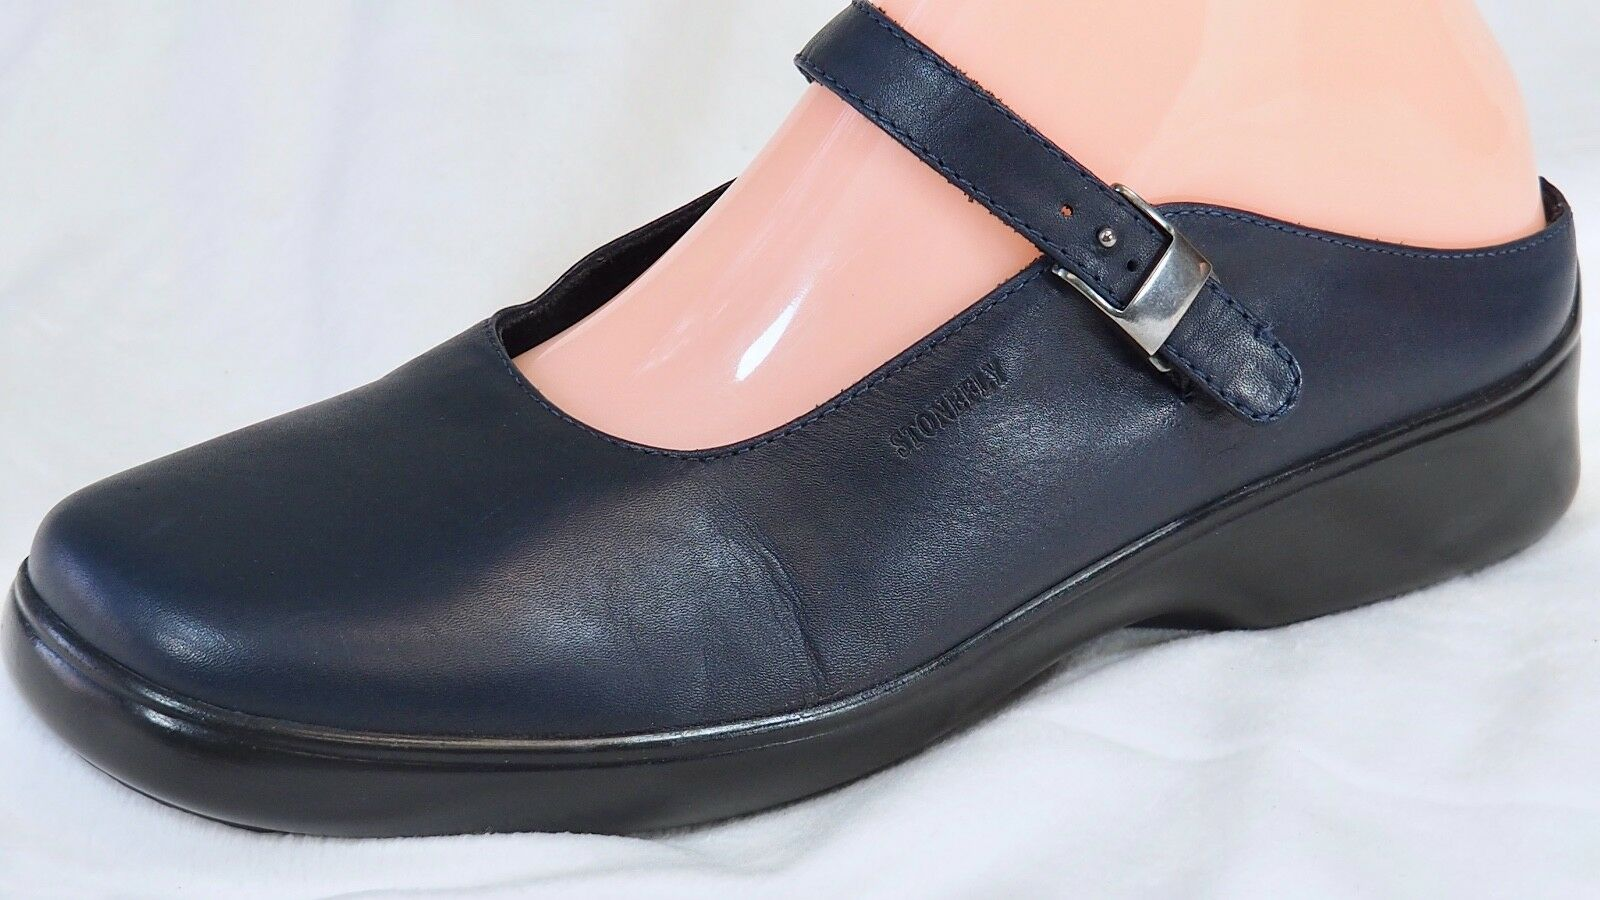 STONEFLY Absolute Comfort Leather Mary Jane shoes Navy bluee 7.5   38